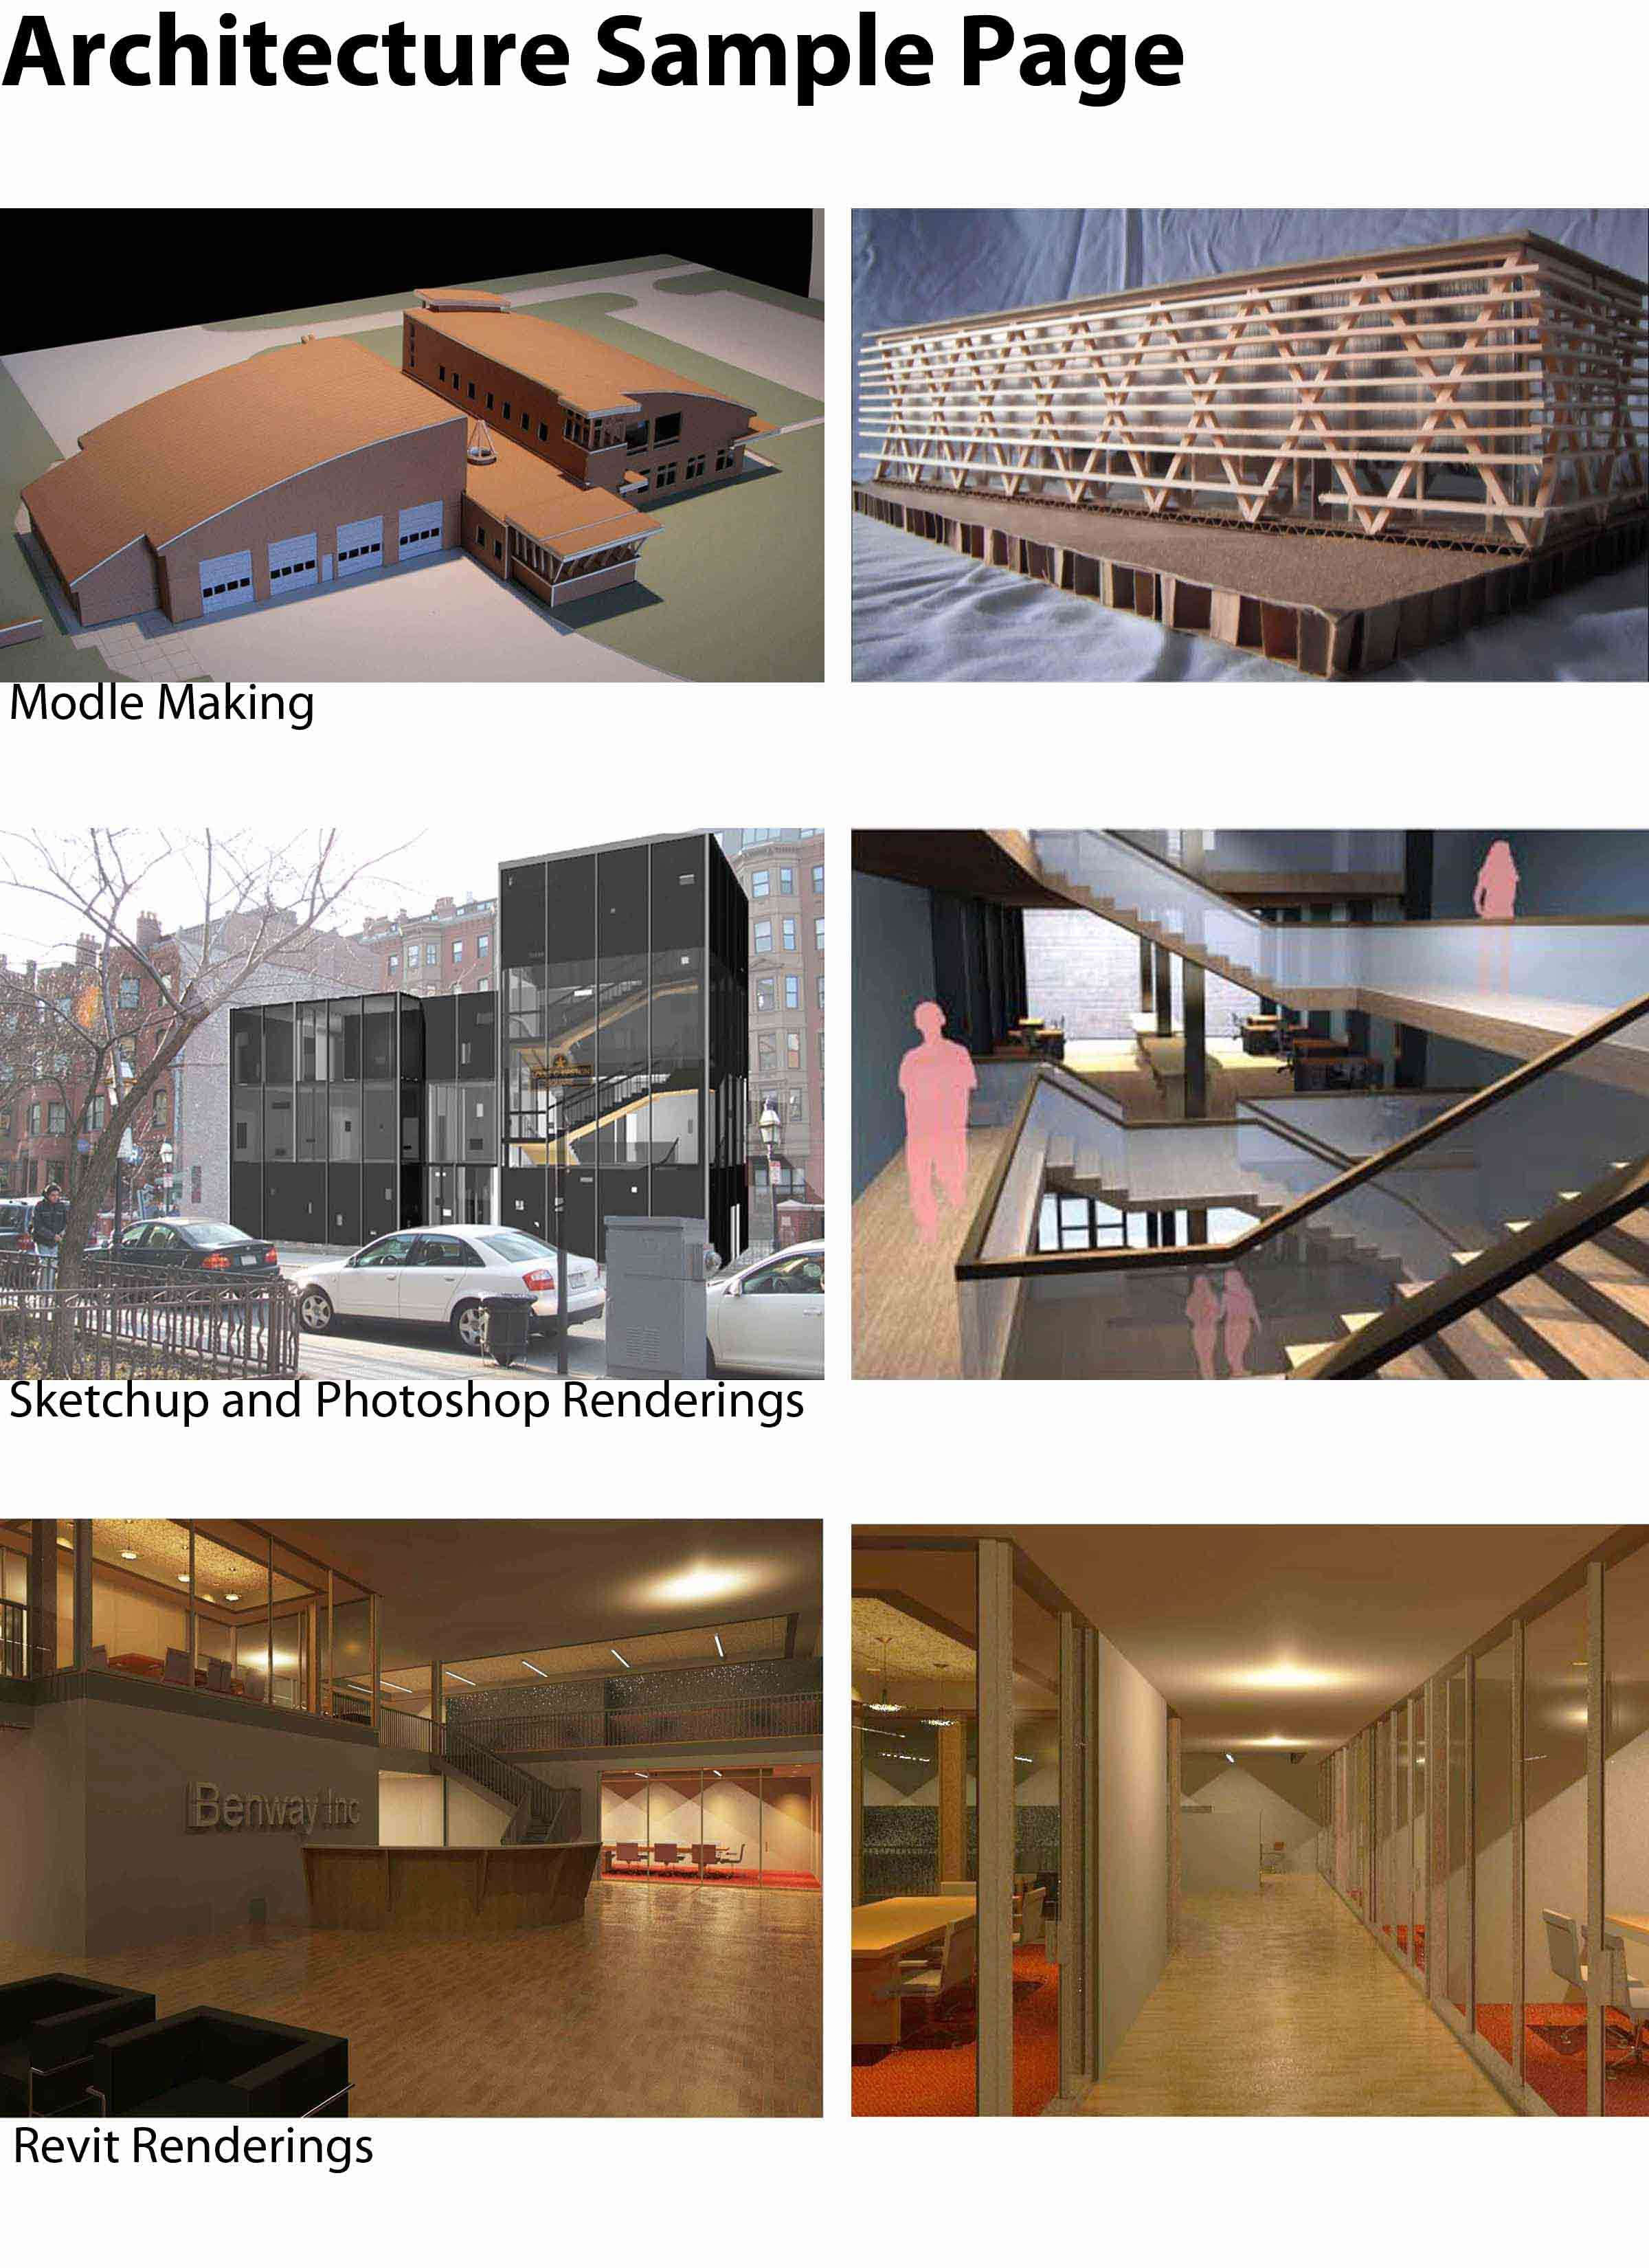 samples of architecture work